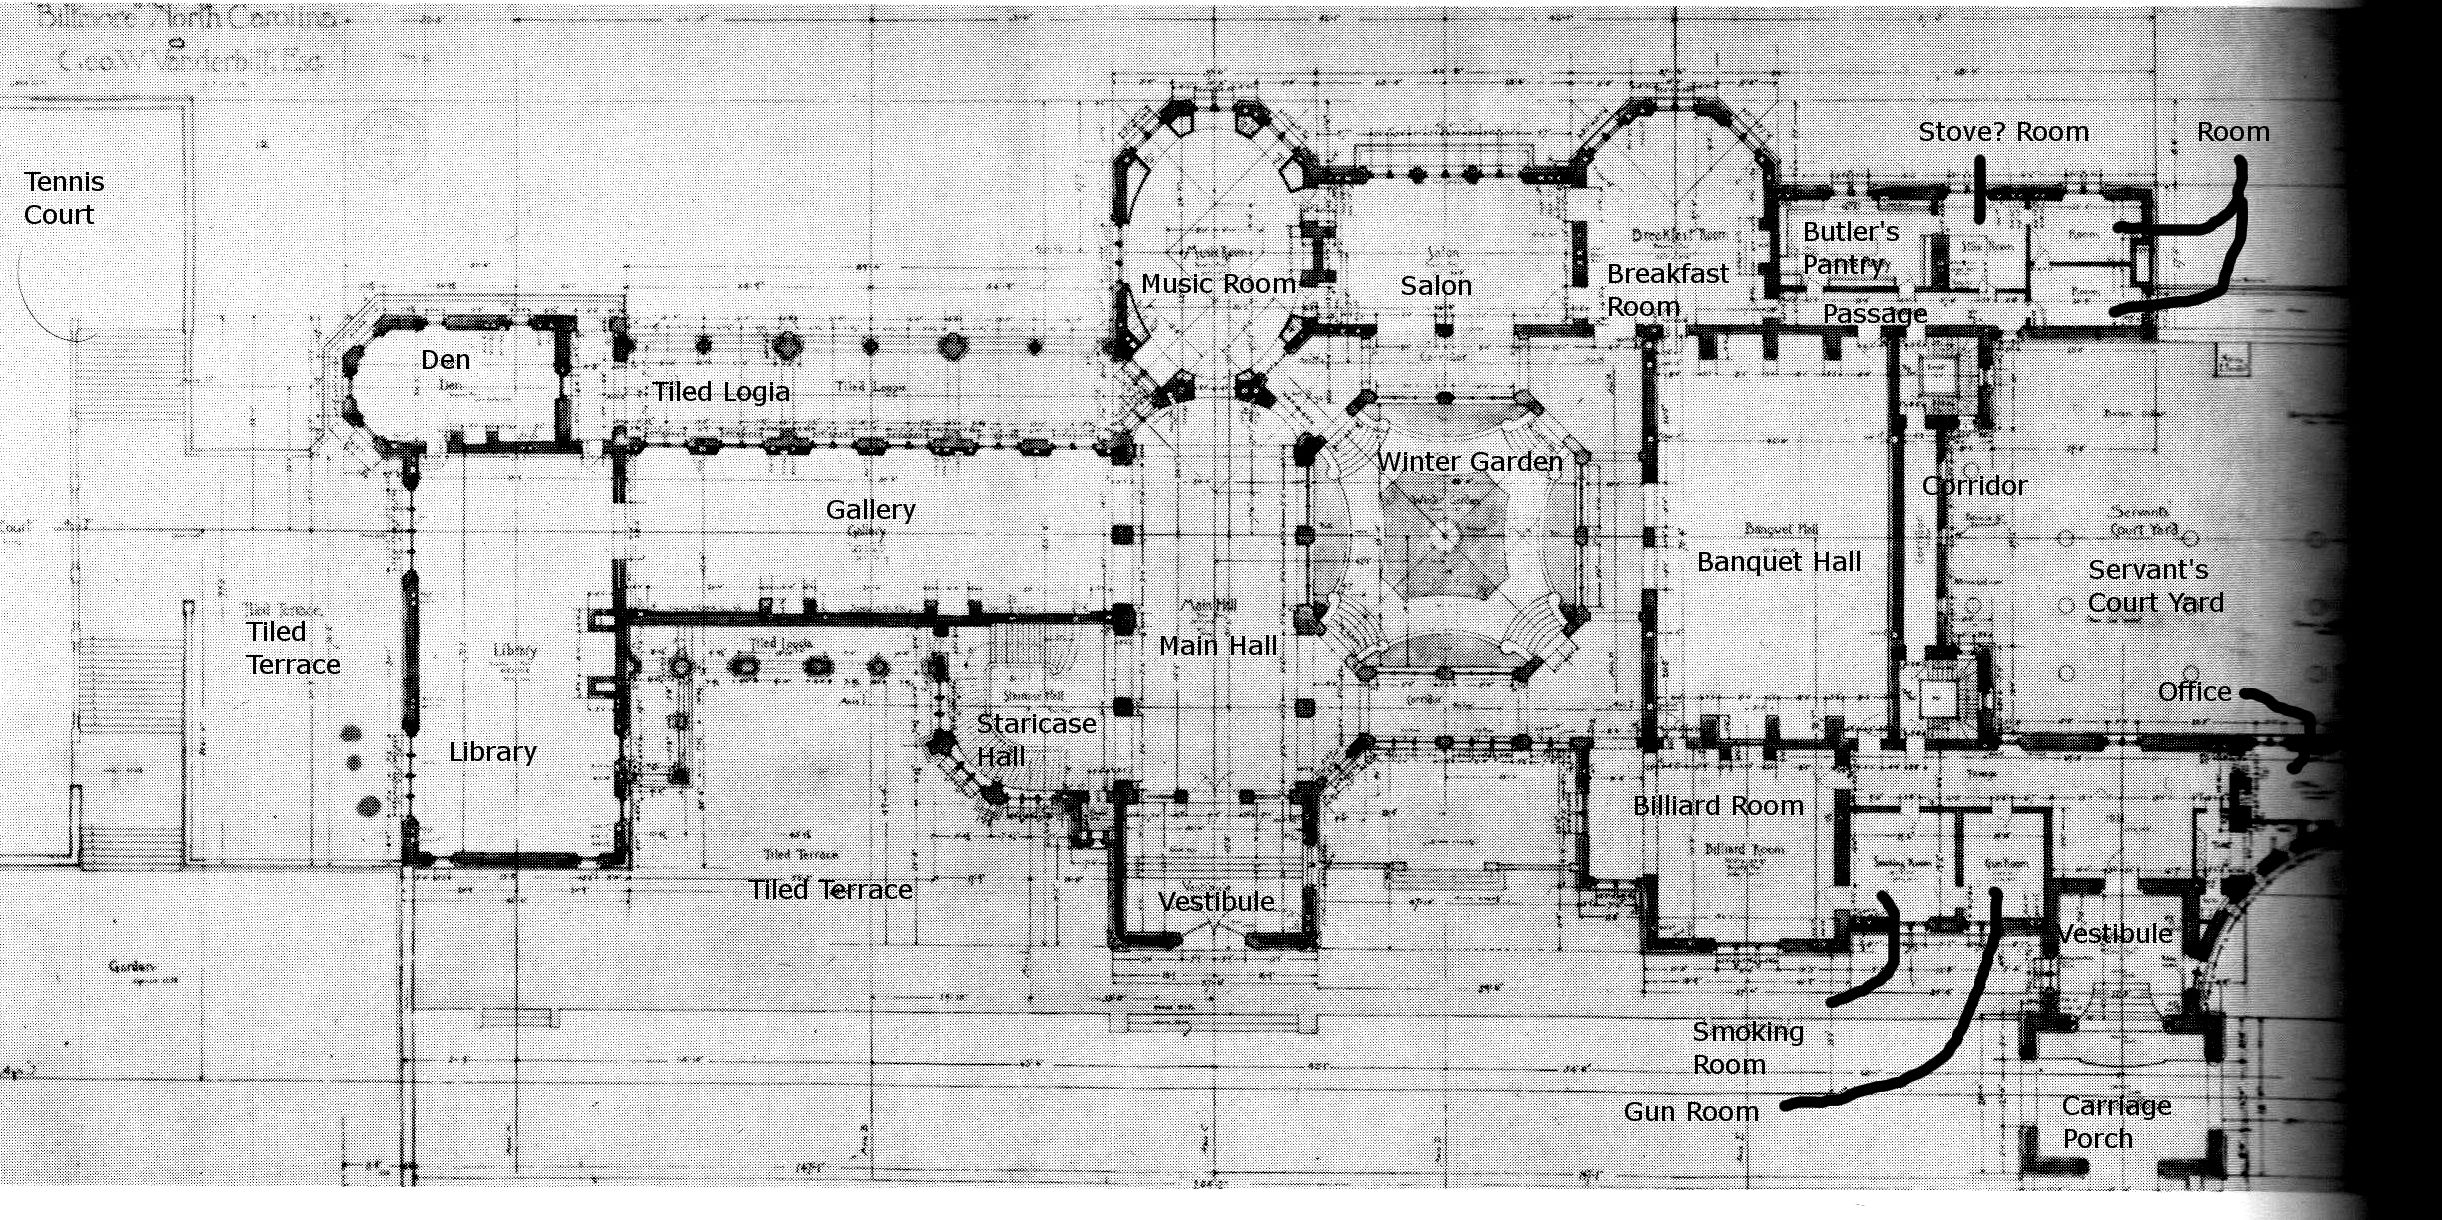 f25e5b1d10a2e4f3595c63d385900ce6 biltmore ground floor plan with details the gilded age,Biltmore House Plans